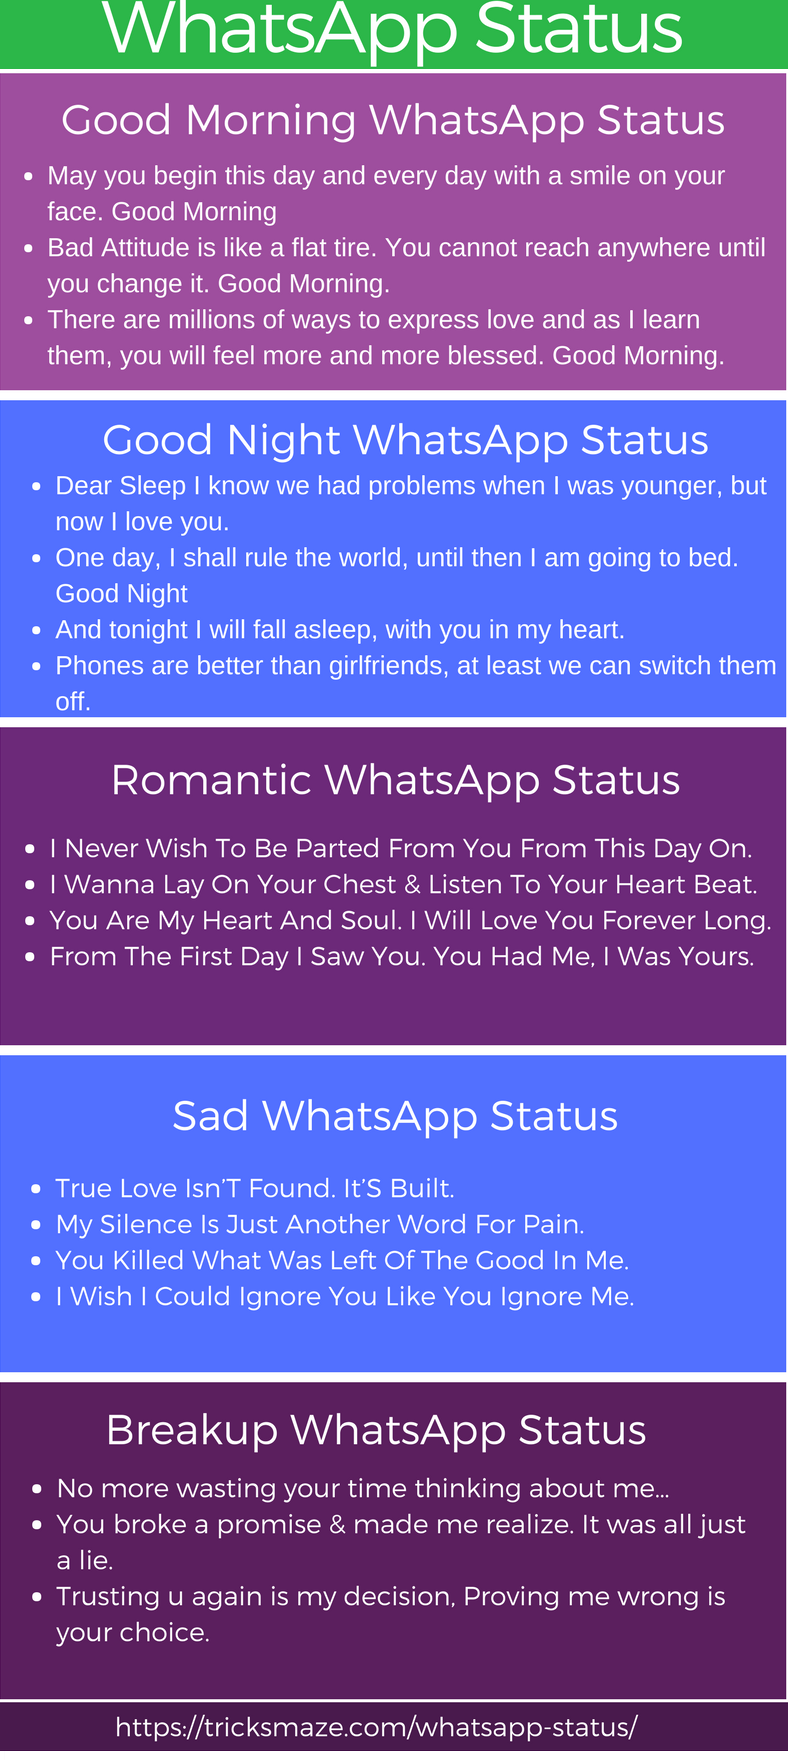 WhatsApp-Status 2019